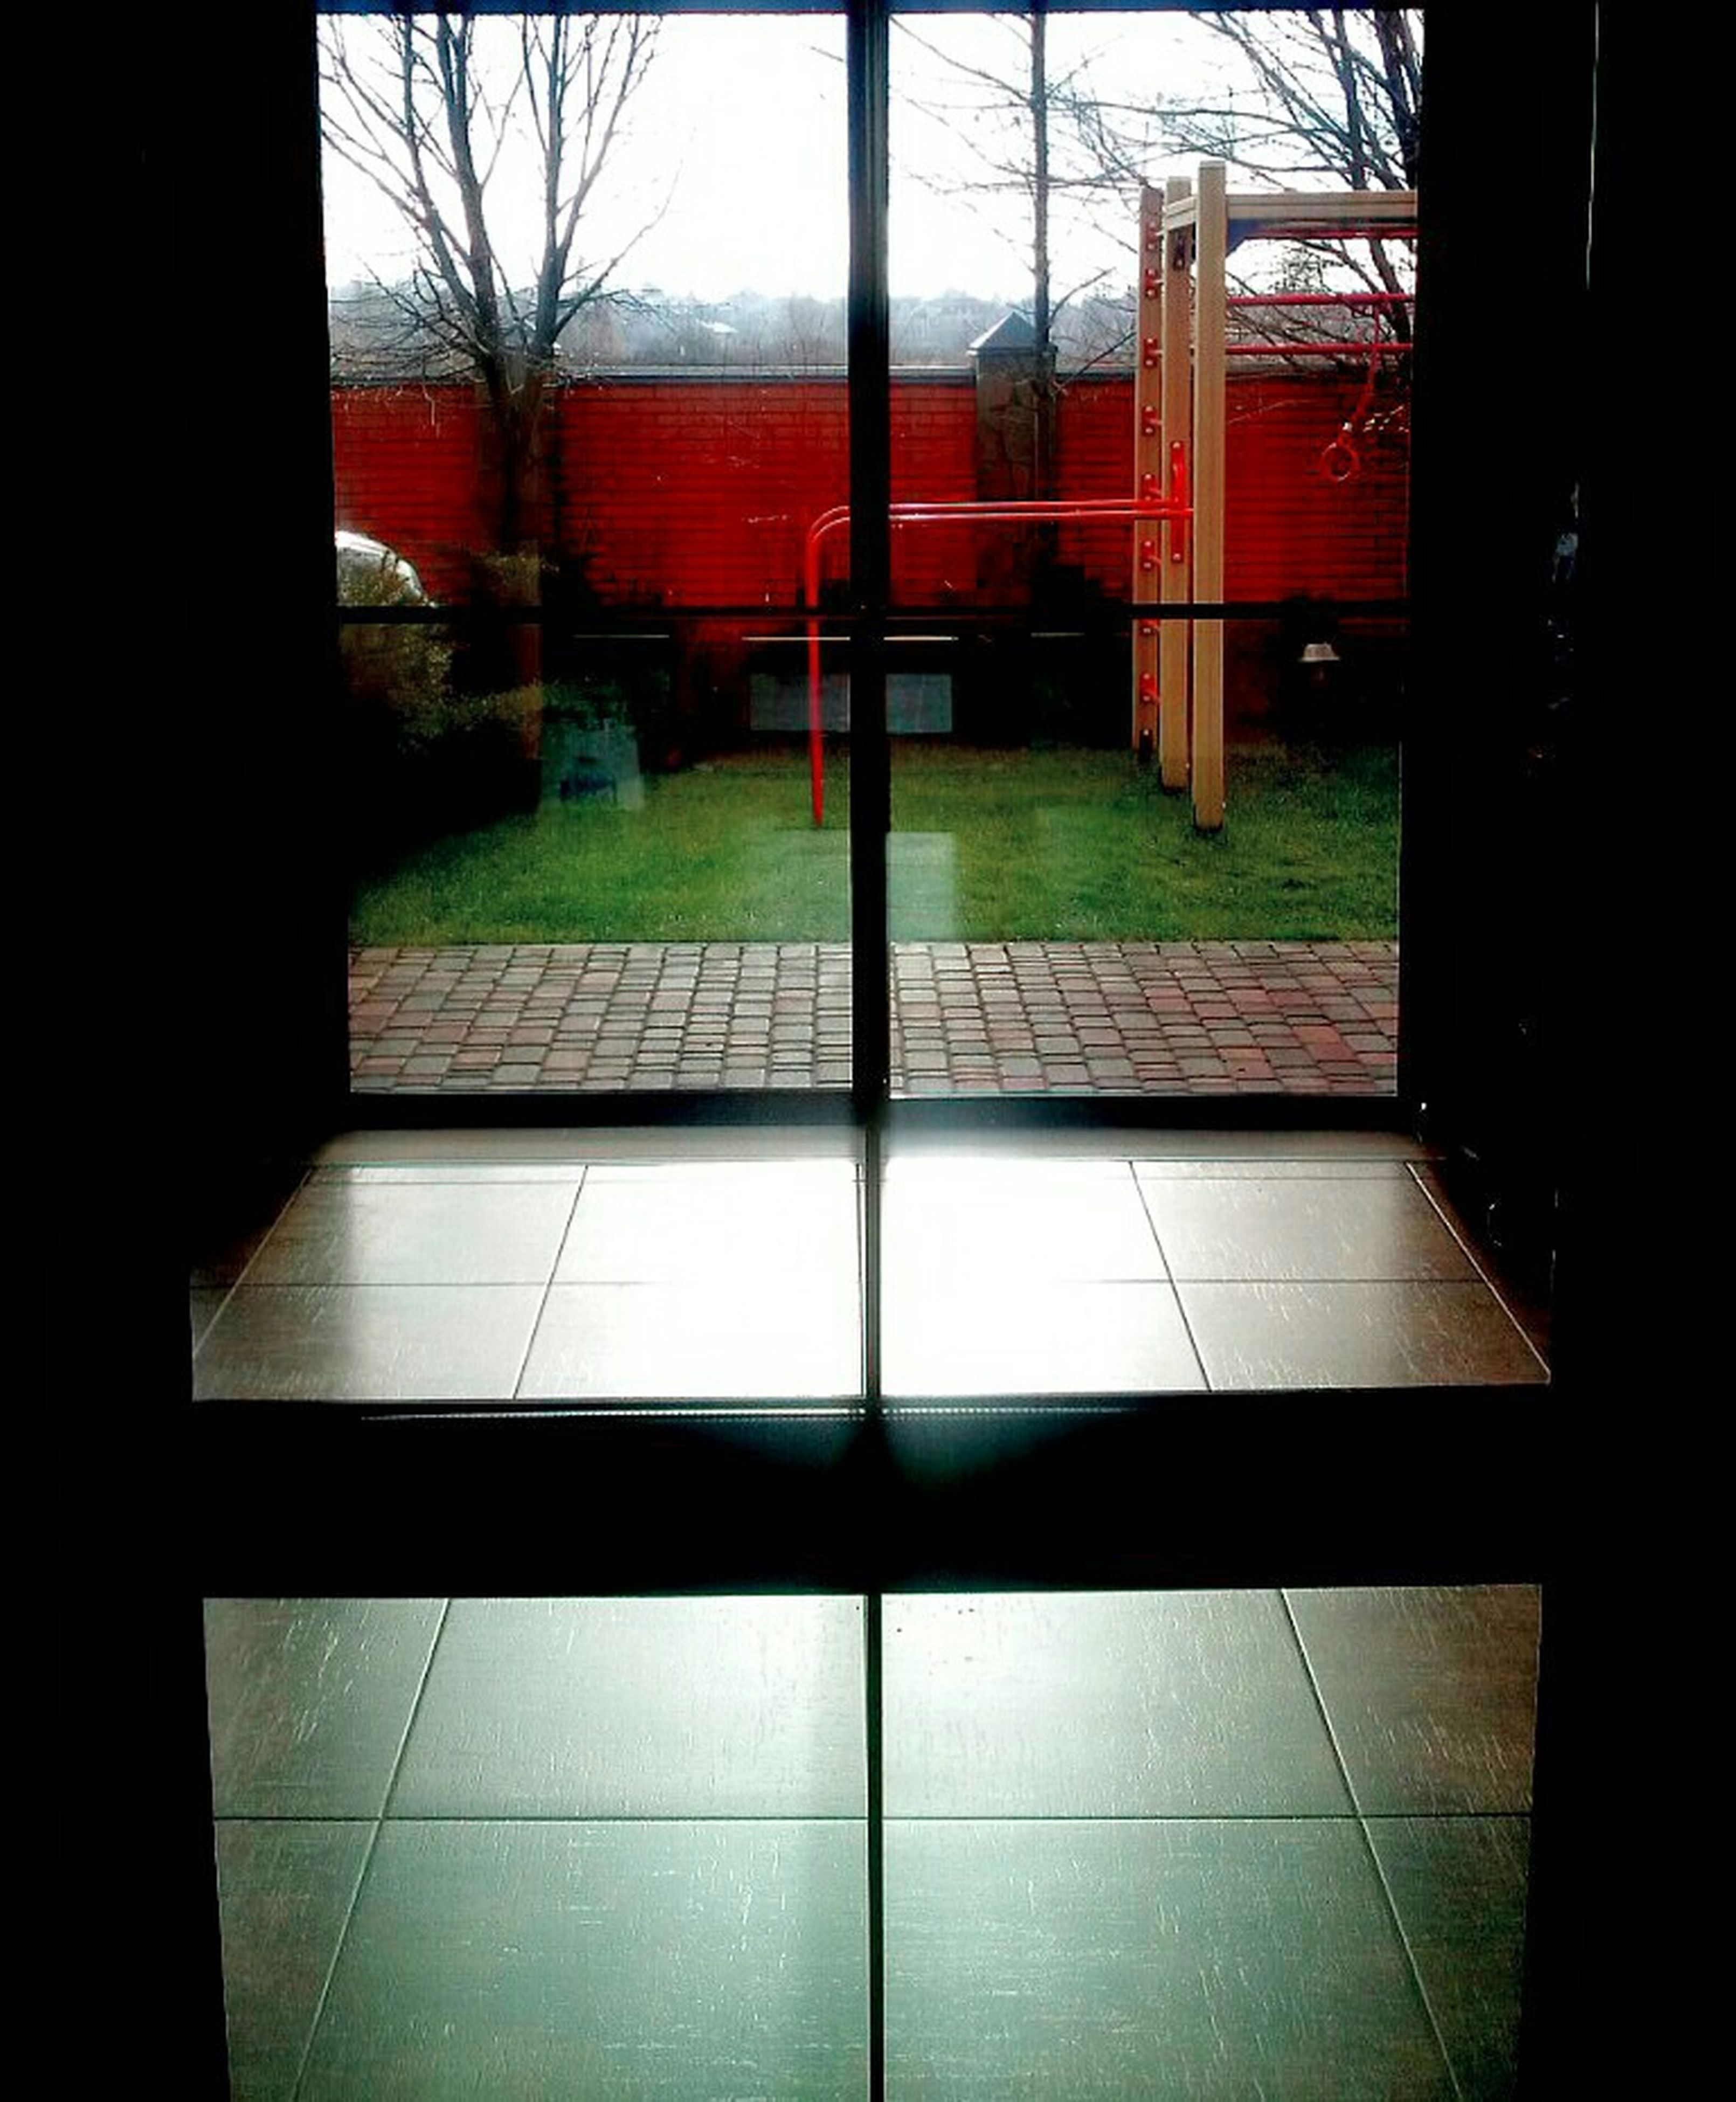 indoors, transfer print, window, architecture, built structure, tiled floor, glass - material, transparent, auto post production filter, flooring, building exterior, absence, reflection, empty, door, shadow, sunlight, tile, glass, day